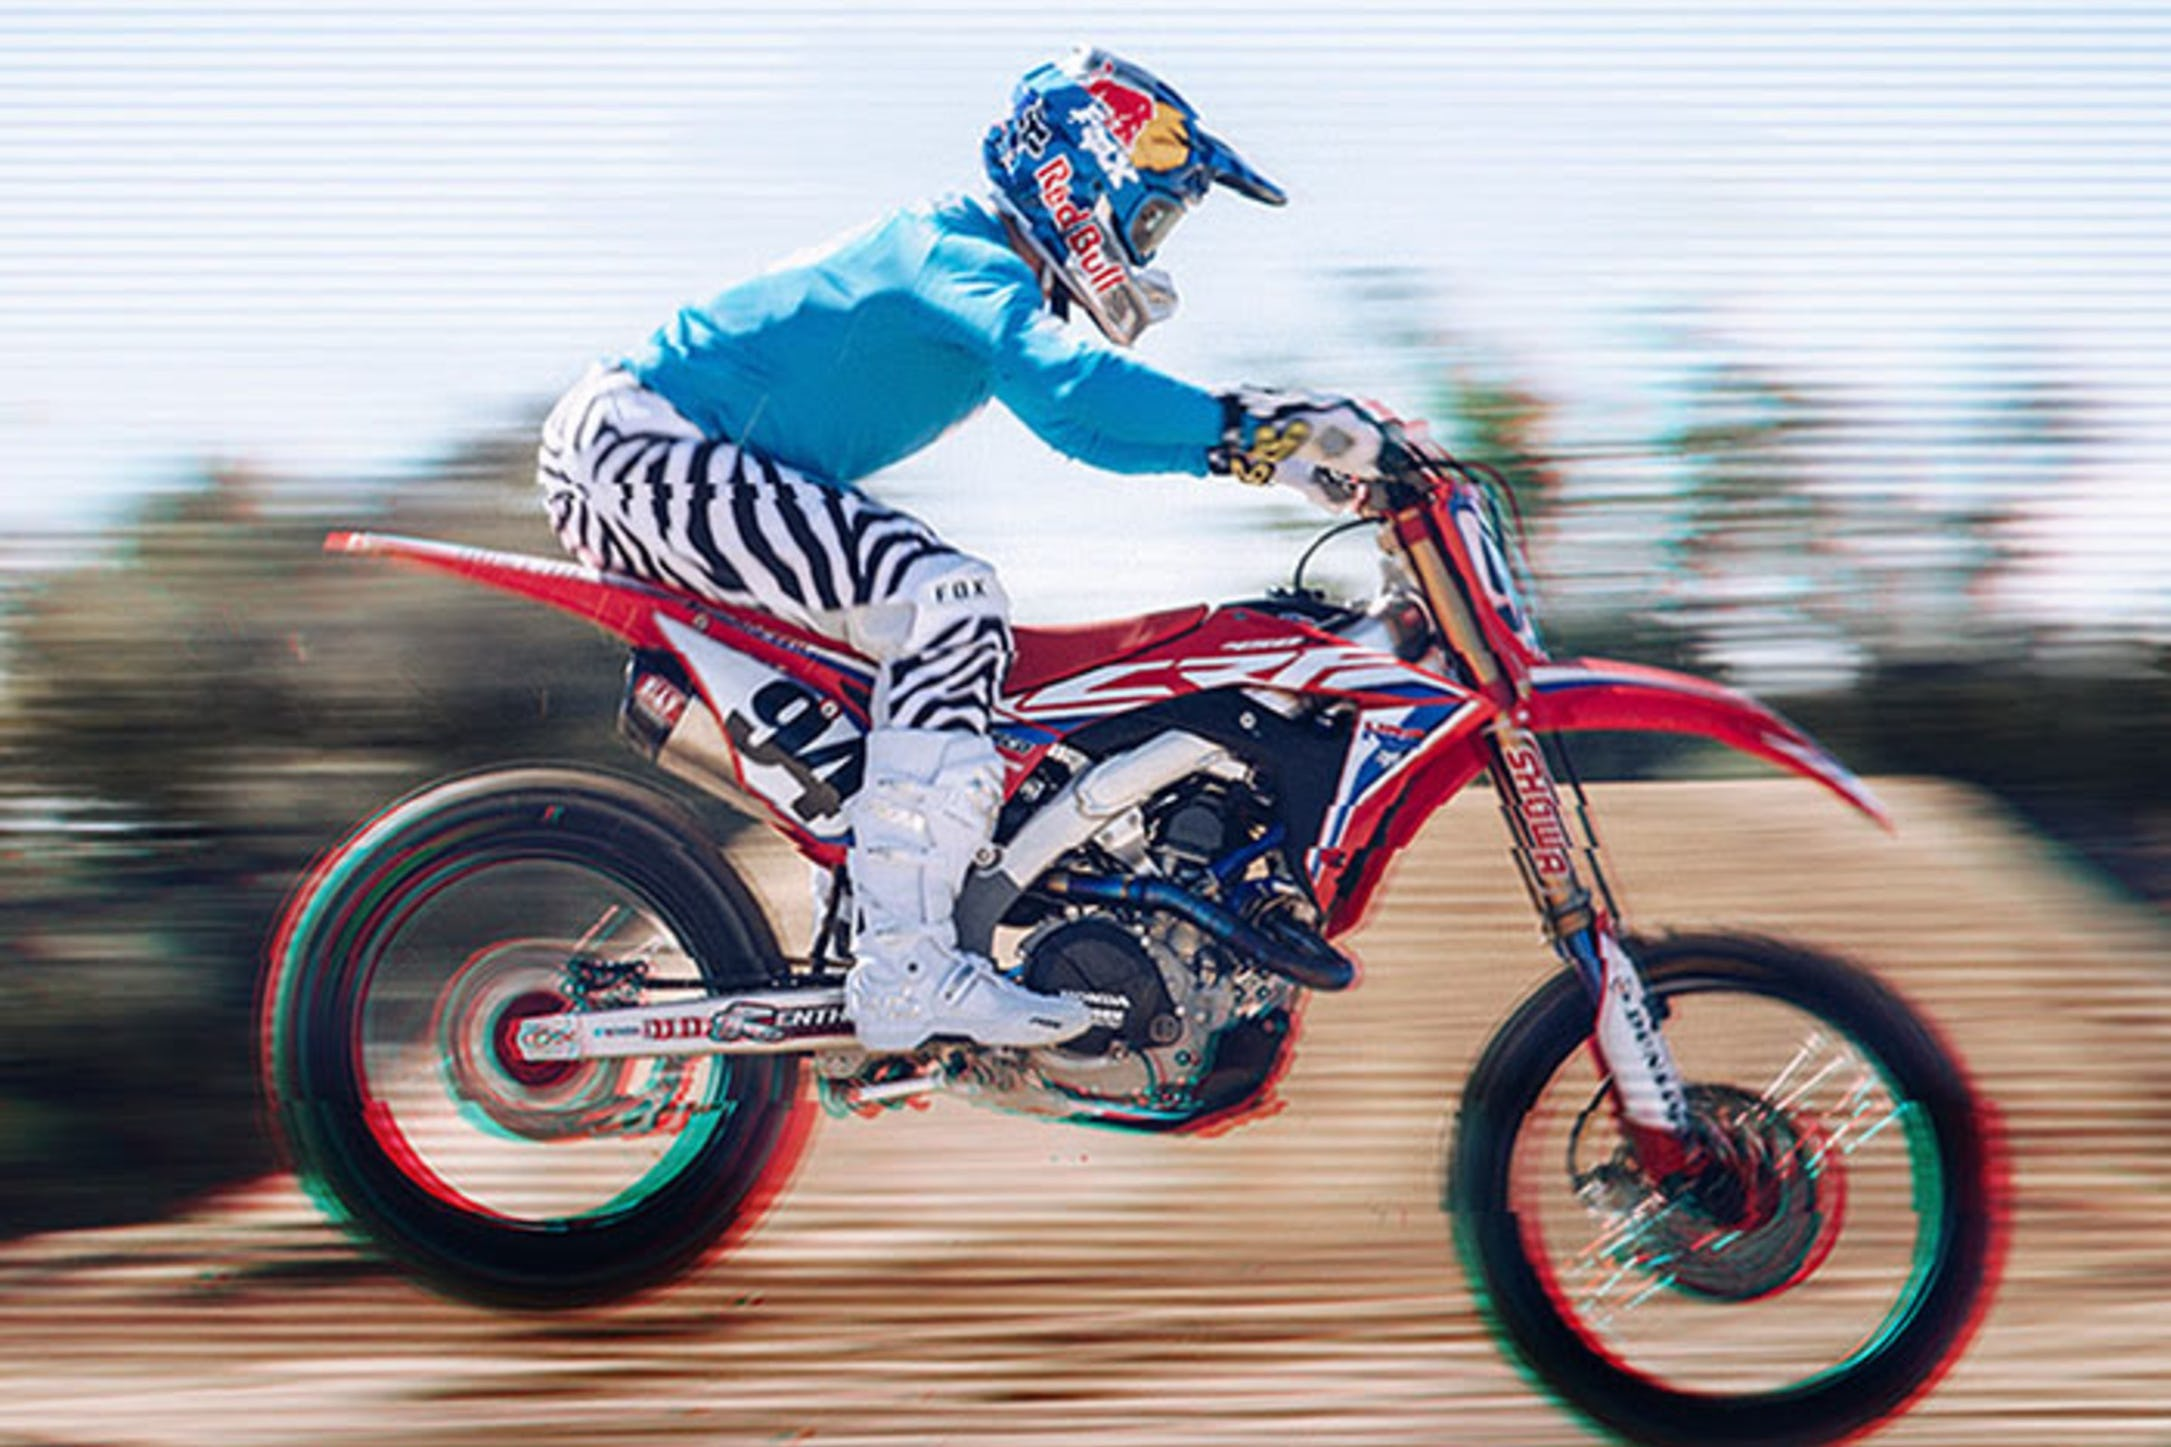 a020d243f Fox Releases Zebra Throwback Racewear and Apparel - Racer X Online